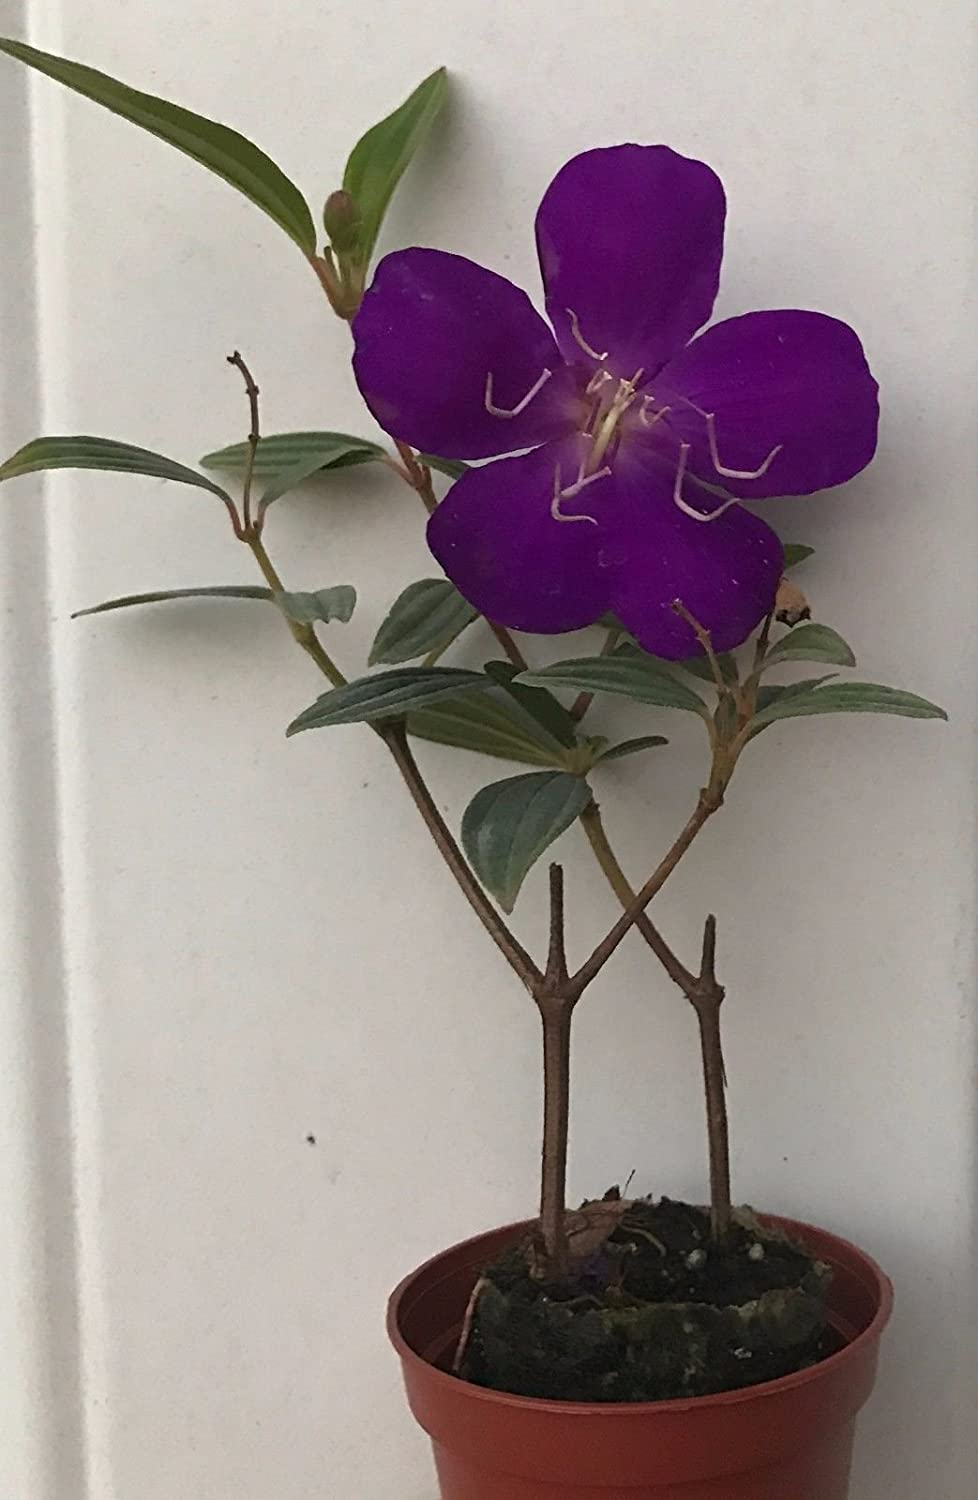 Tibouchina urvilleana ~ Princess Flower, Purple Glory Bush ~ Live Starter Plant good